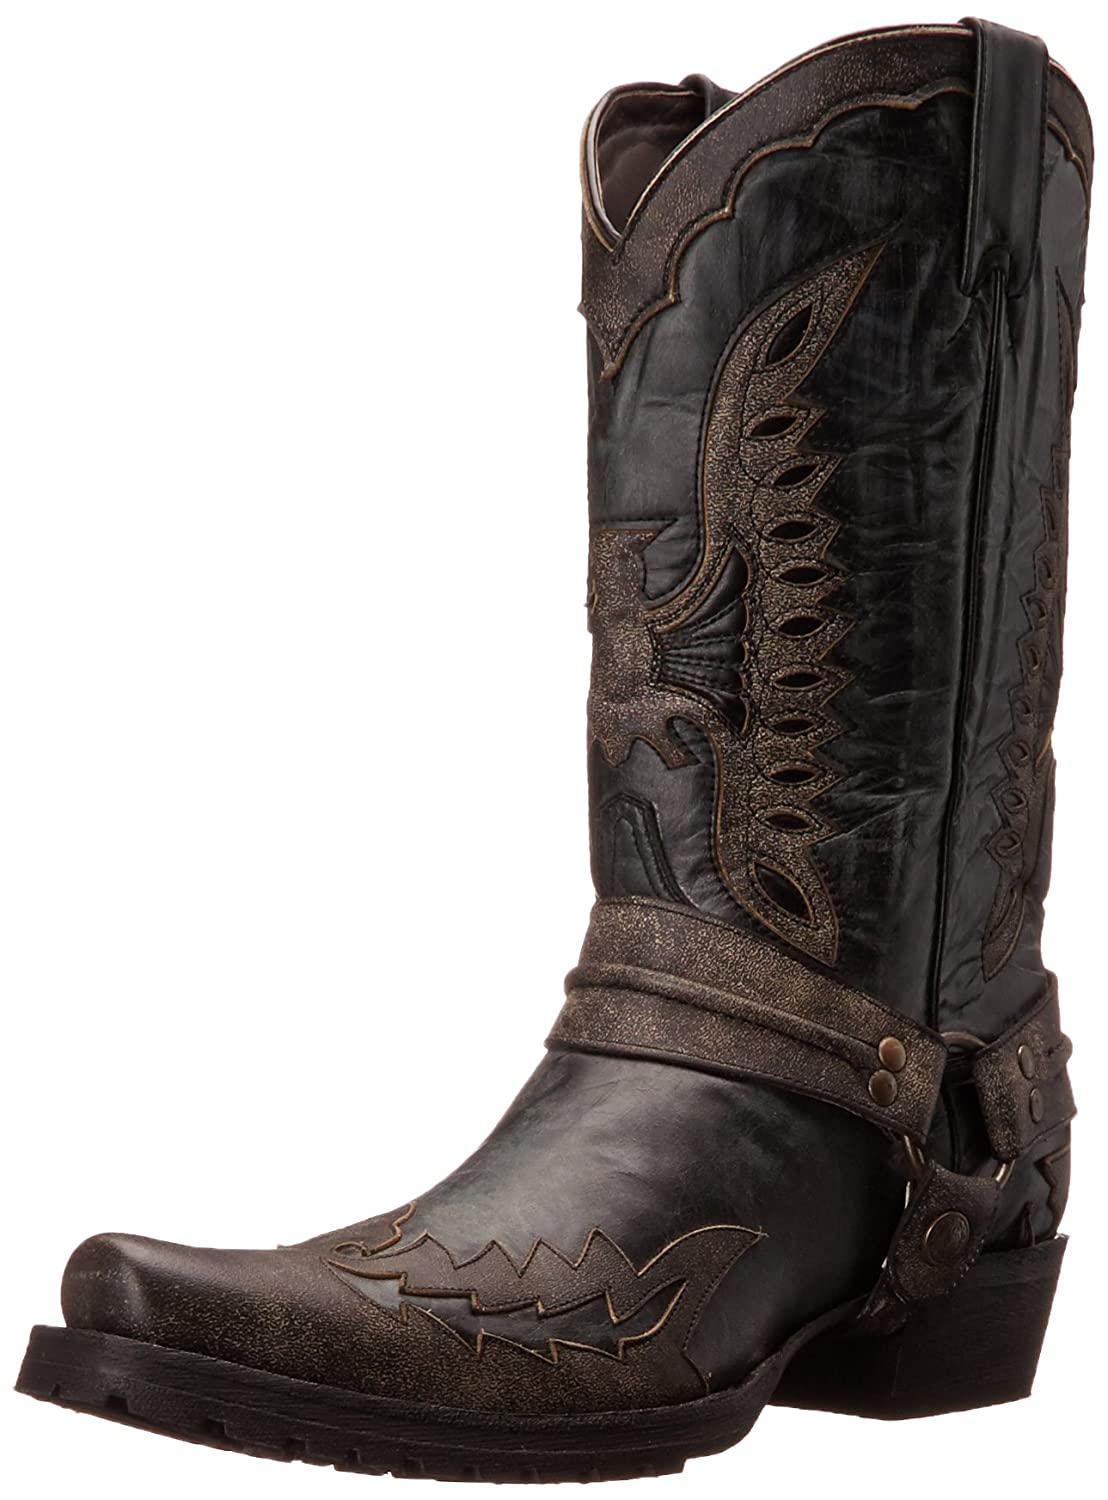 05b30be23f5 Stetson Men's Outlaw Eagle Western Boot